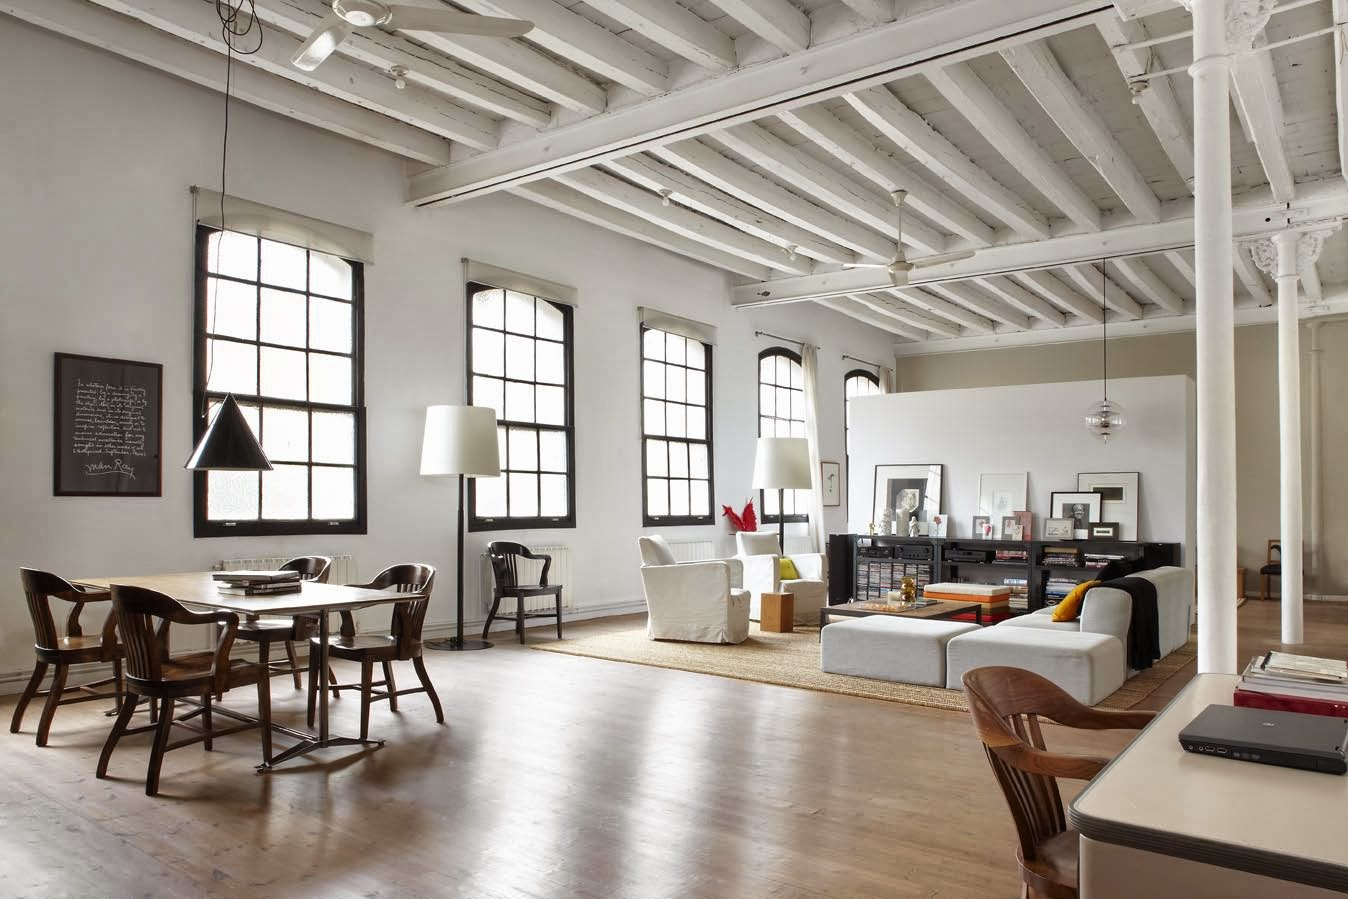 arredando style old factory gets a new life as bright modern loft. Black Bedroom Furniture Sets. Home Design Ideas